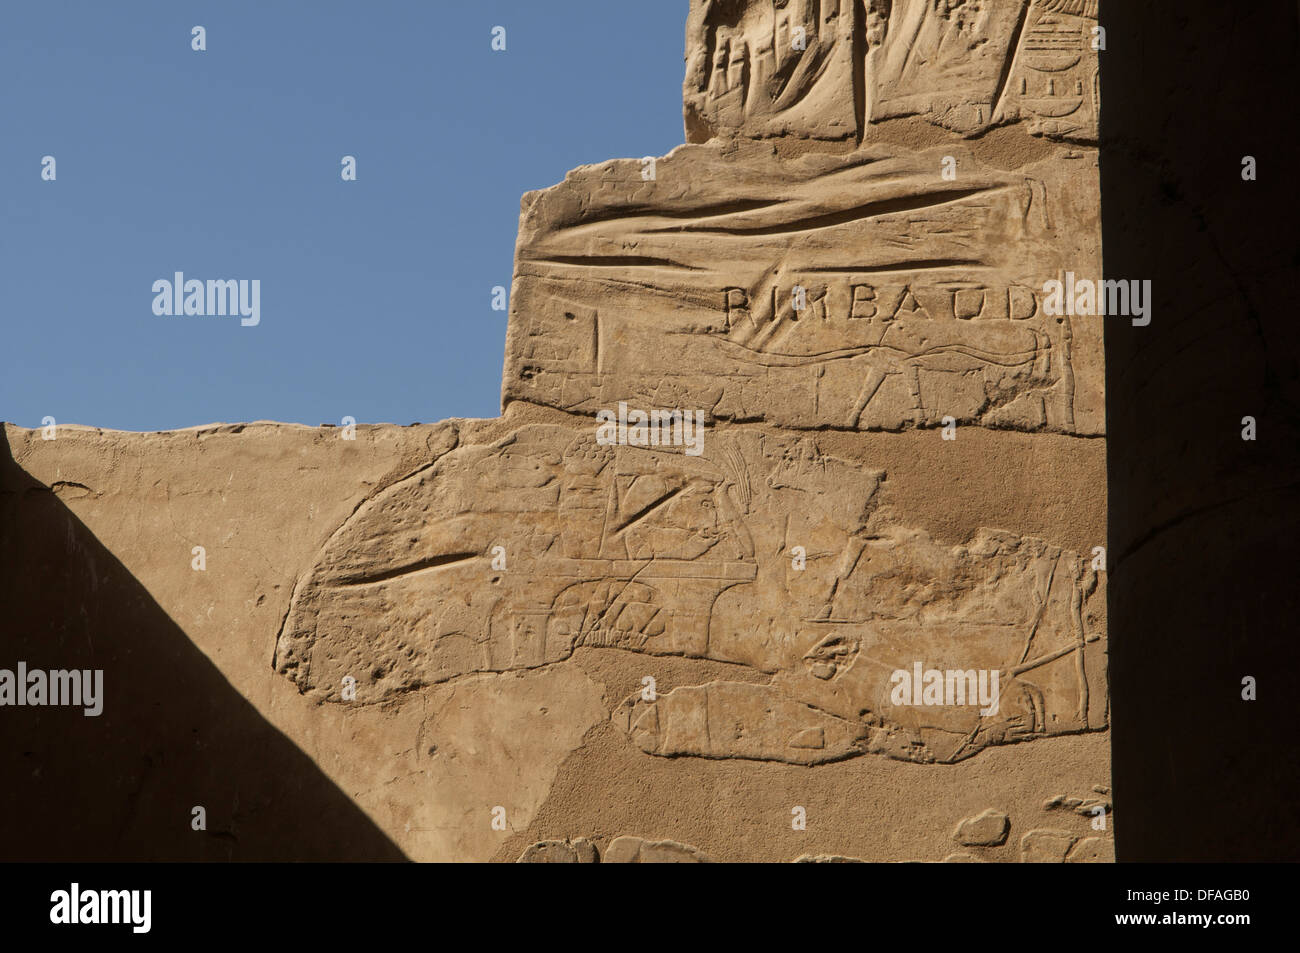 Graffito by the poet Rimbaud on a wall at Luxor Egypt. - Stock Image